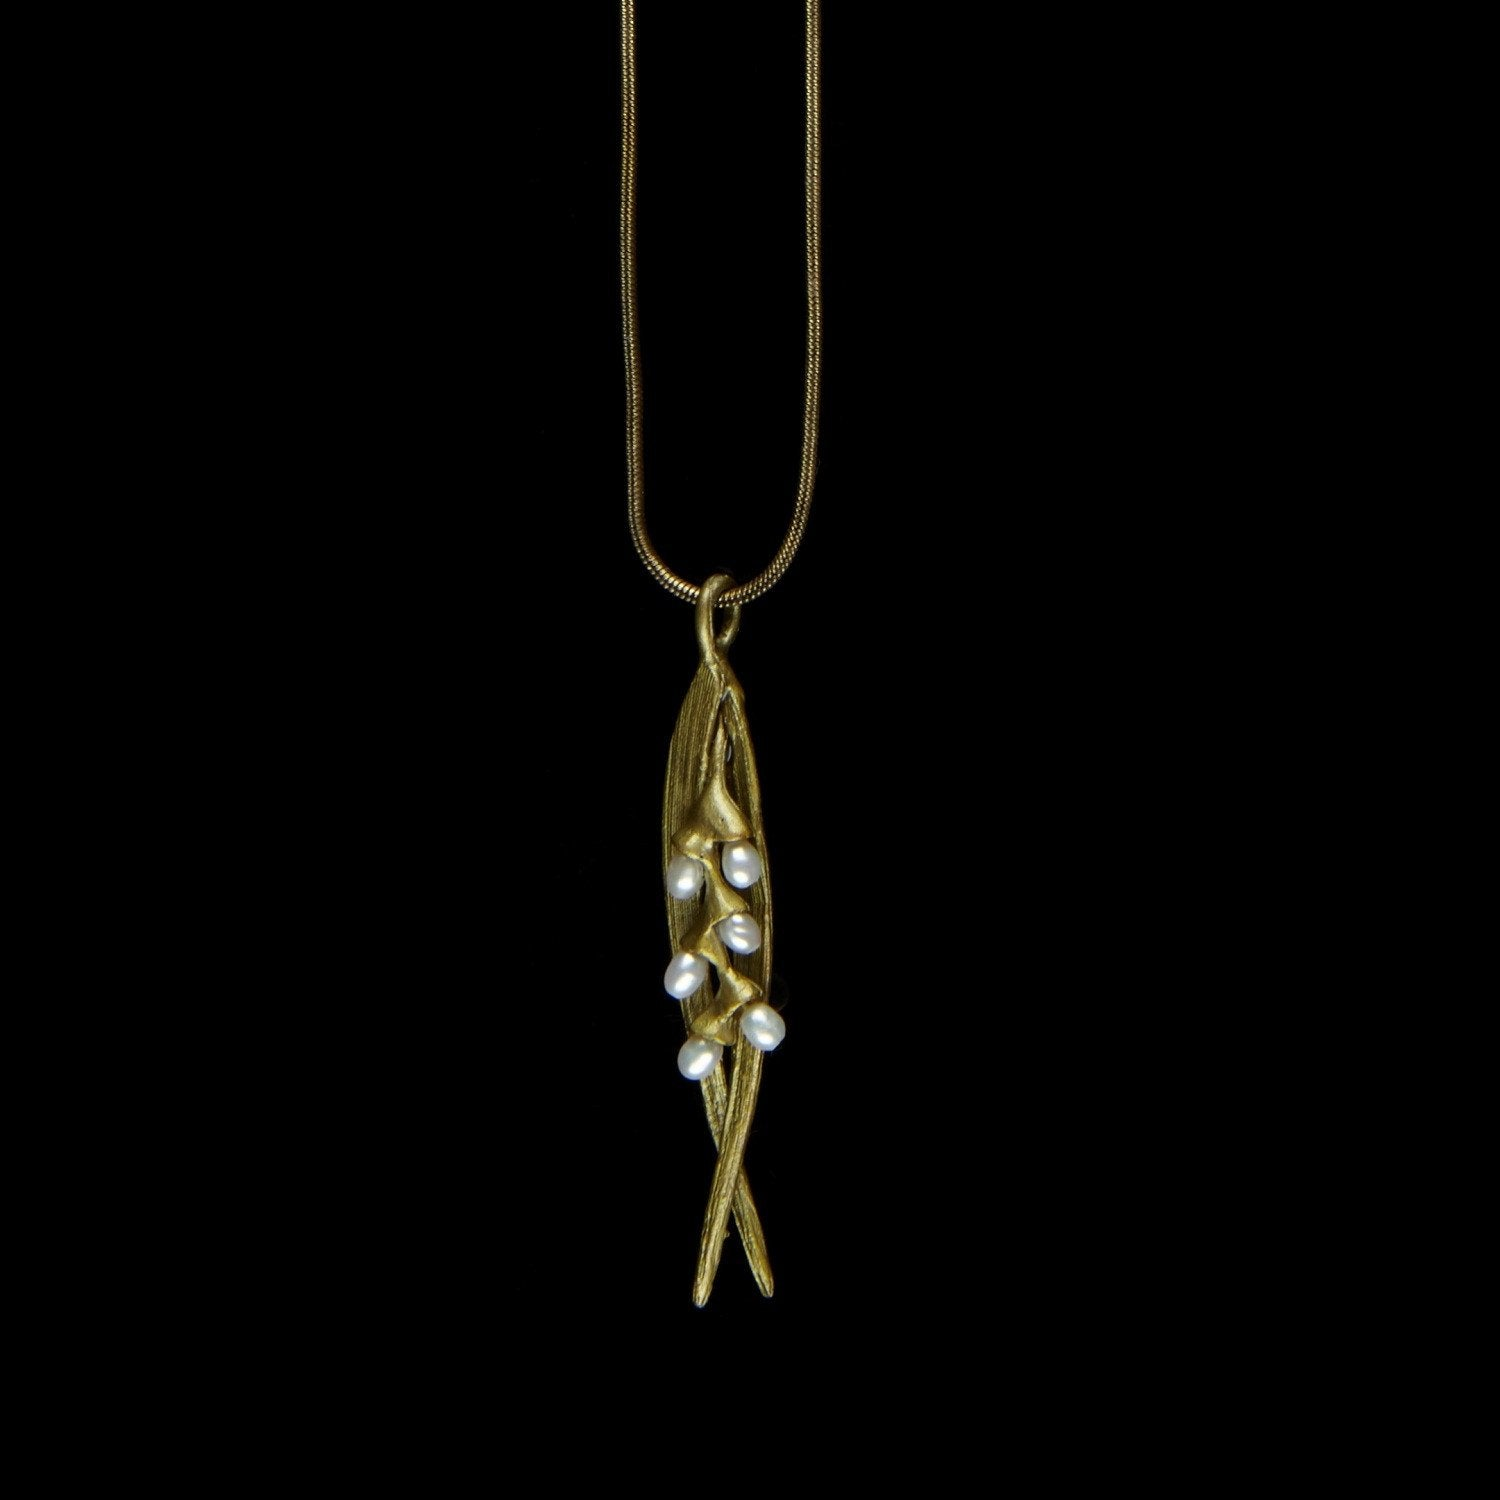 Rice Pendant - Snake Chain